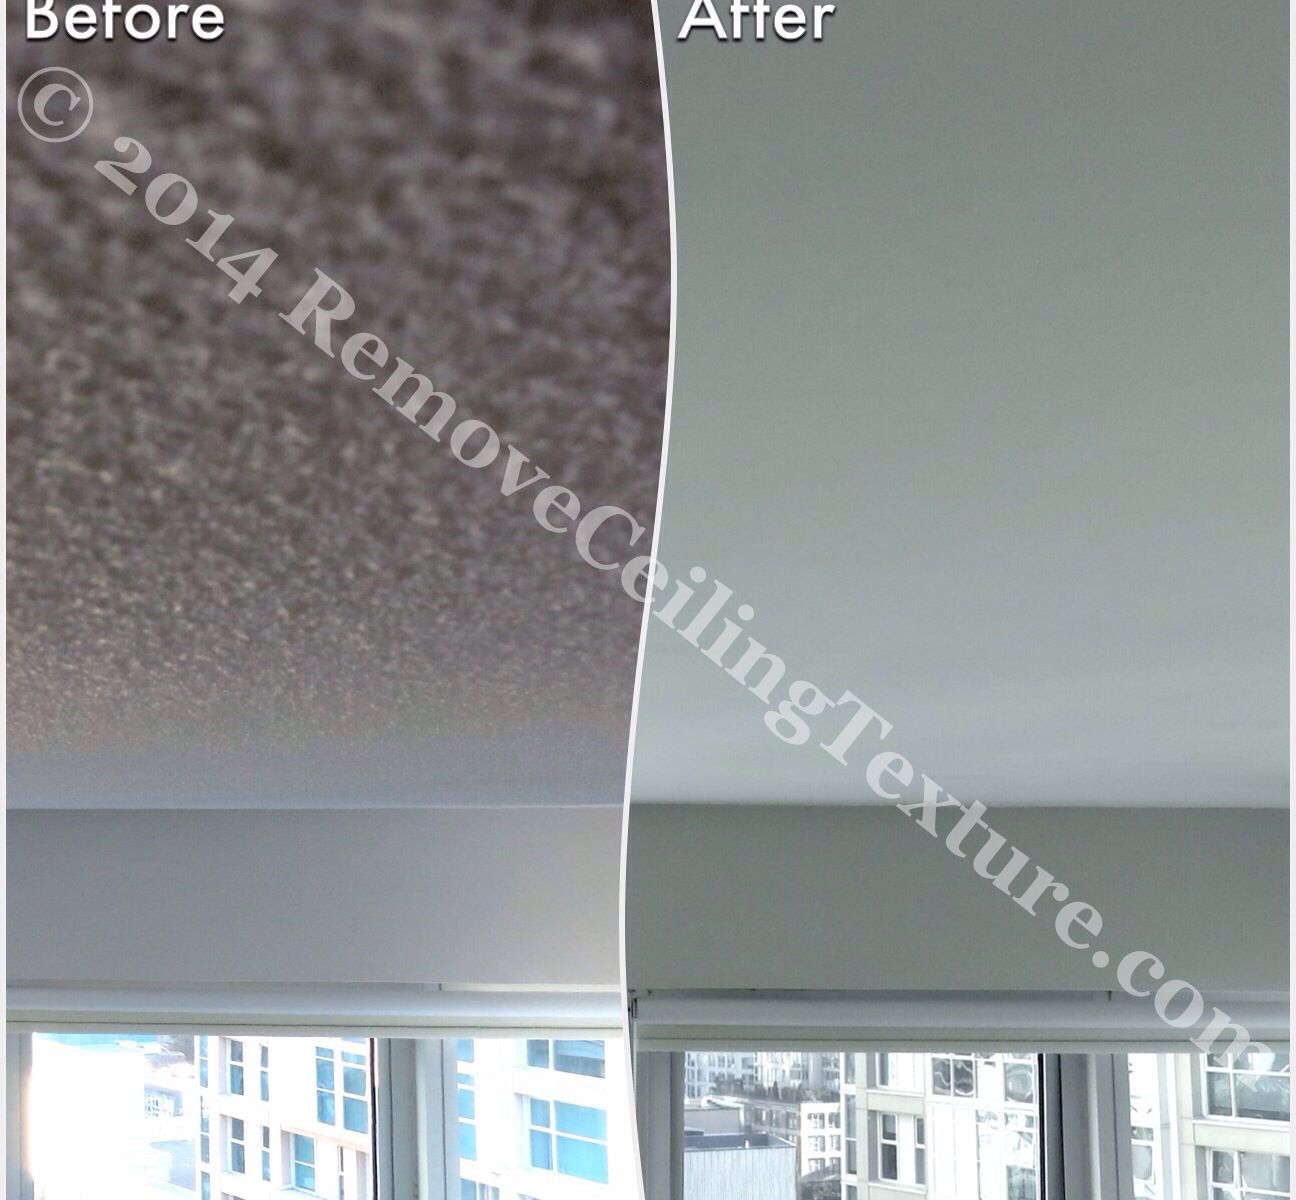 Once professional ceiling contractors were called in, the texture removal went smoothly: Living room with smooth ceilings - condo at 1331 Homer St, Vancouver